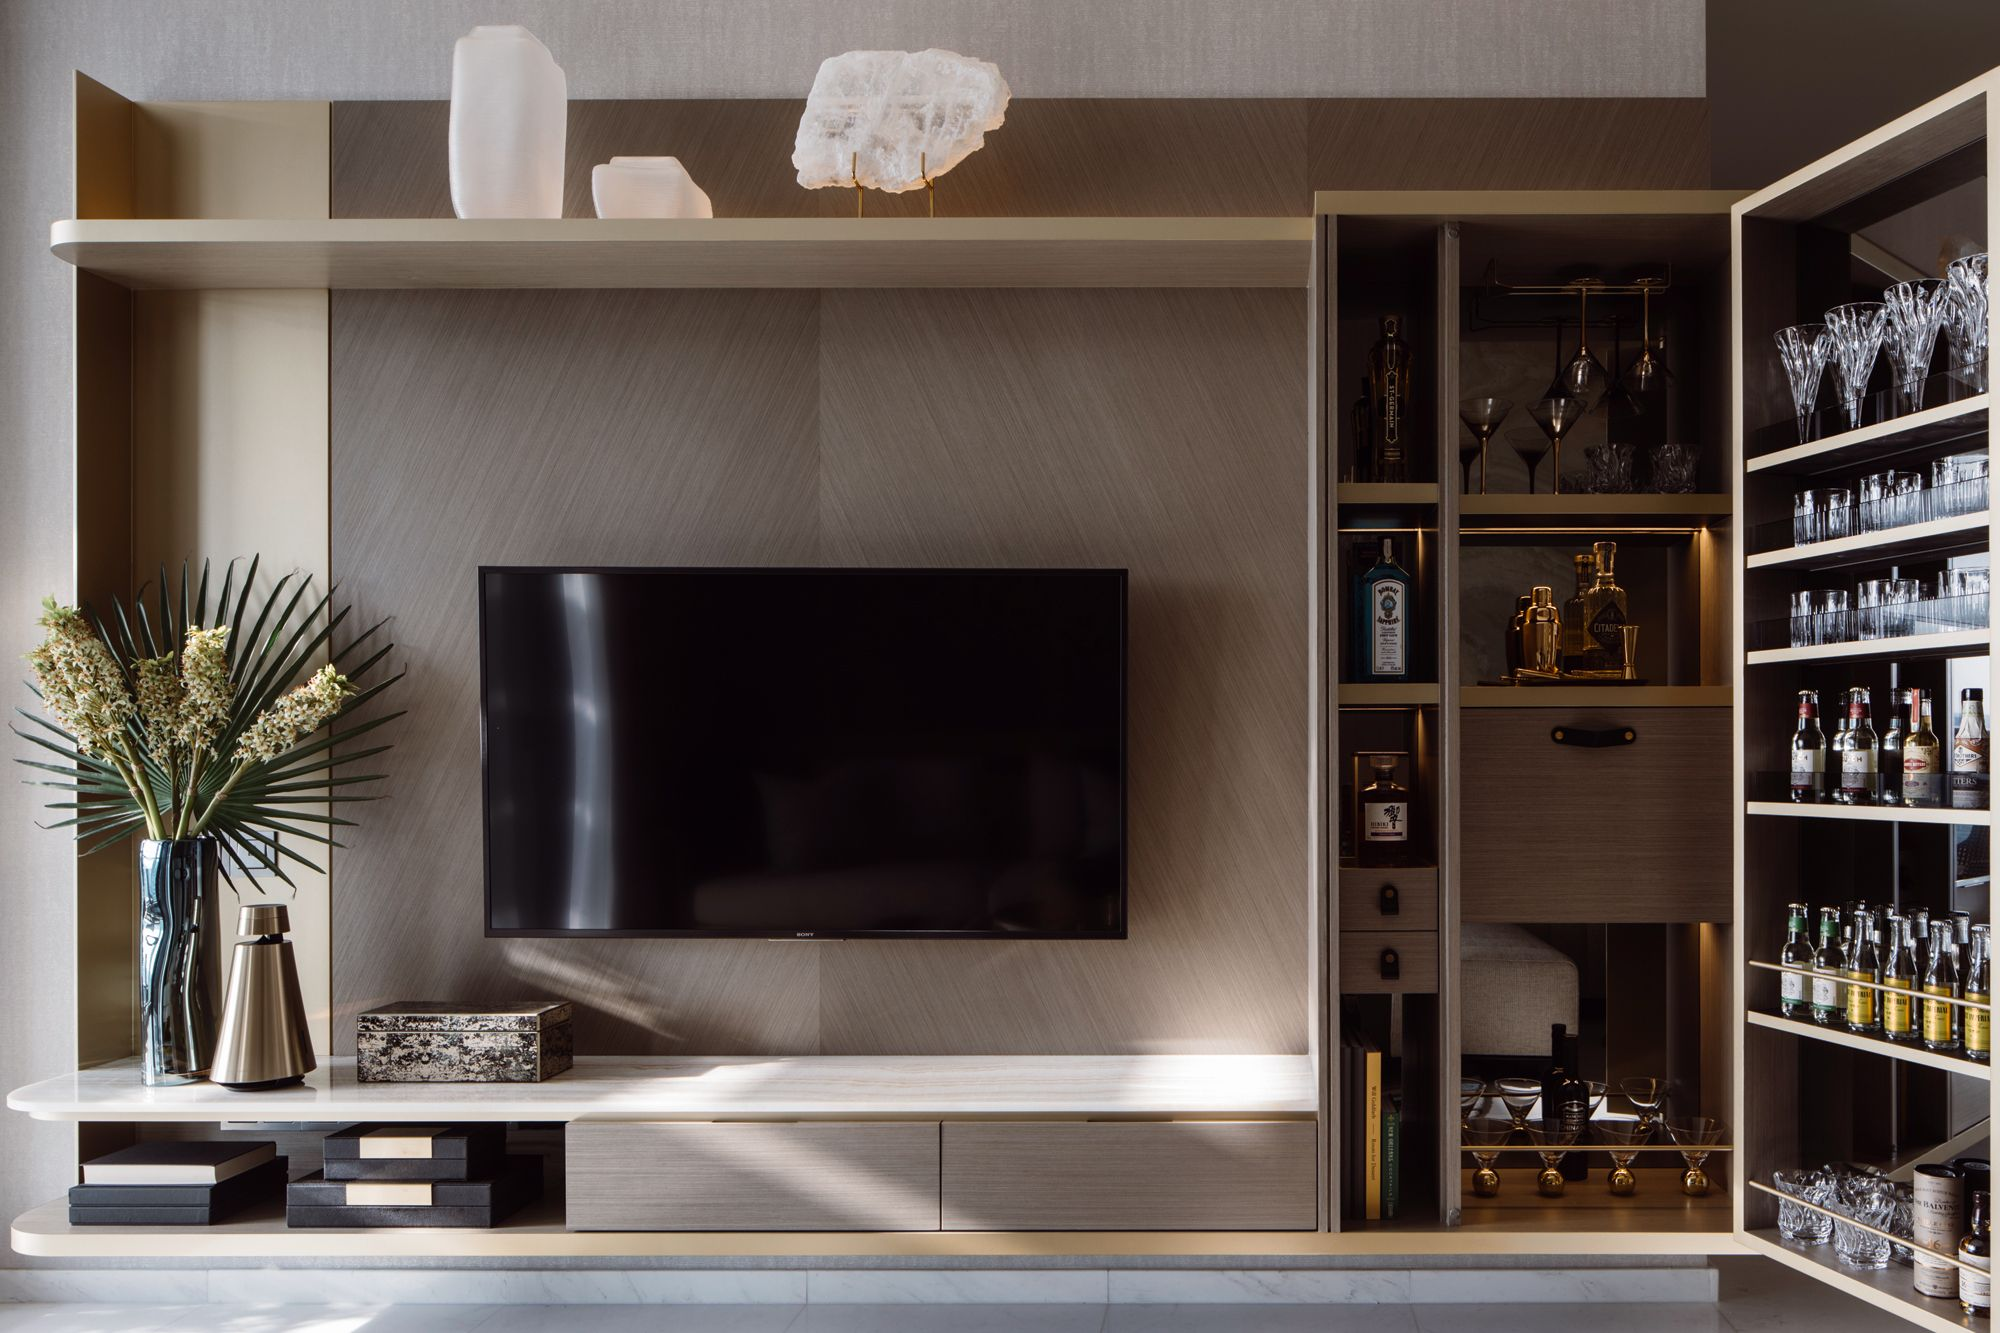 The use of beige tones and light wood contributes to the restful look of the Day unit